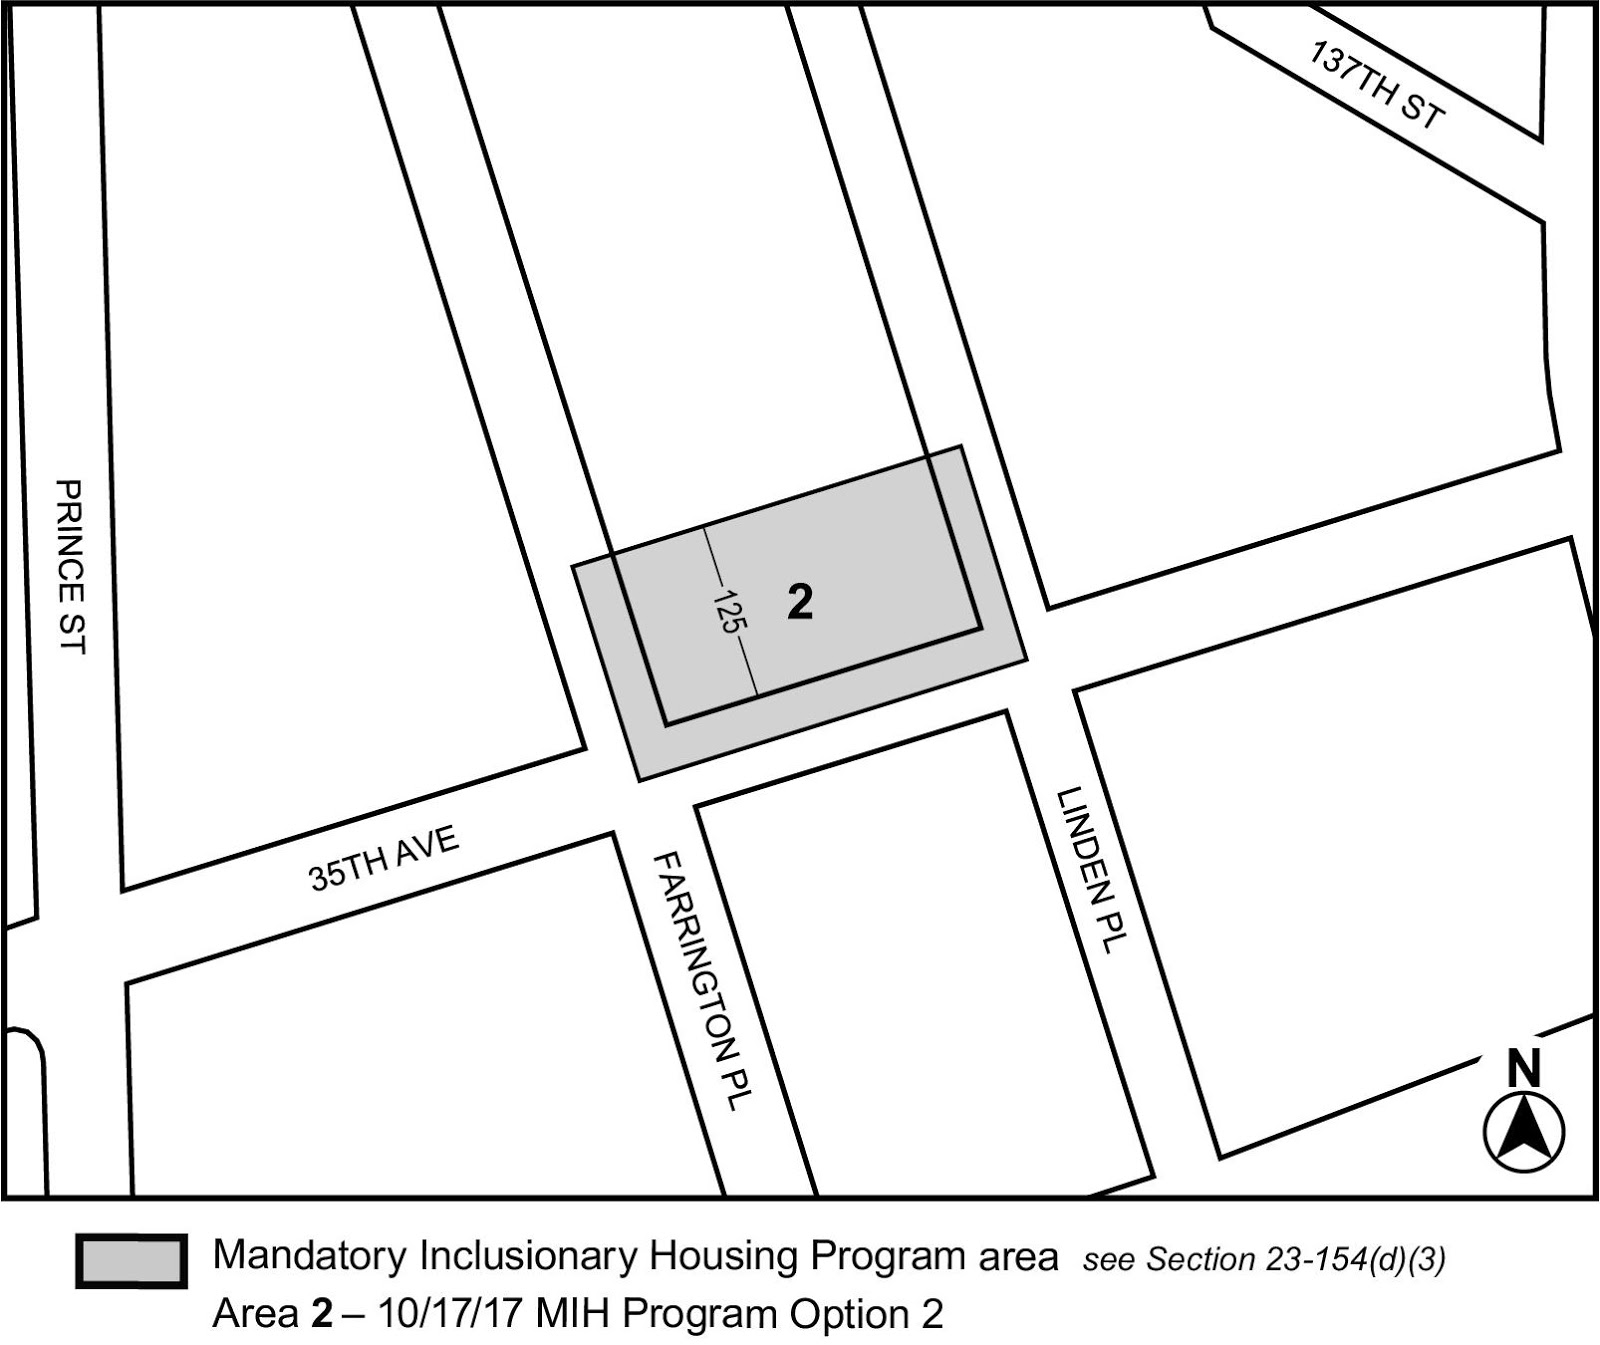 Zoning Resolutions F-Inclusionary Housing Designated Areas and Mandatory Inclusionary Housing Areas_2.121